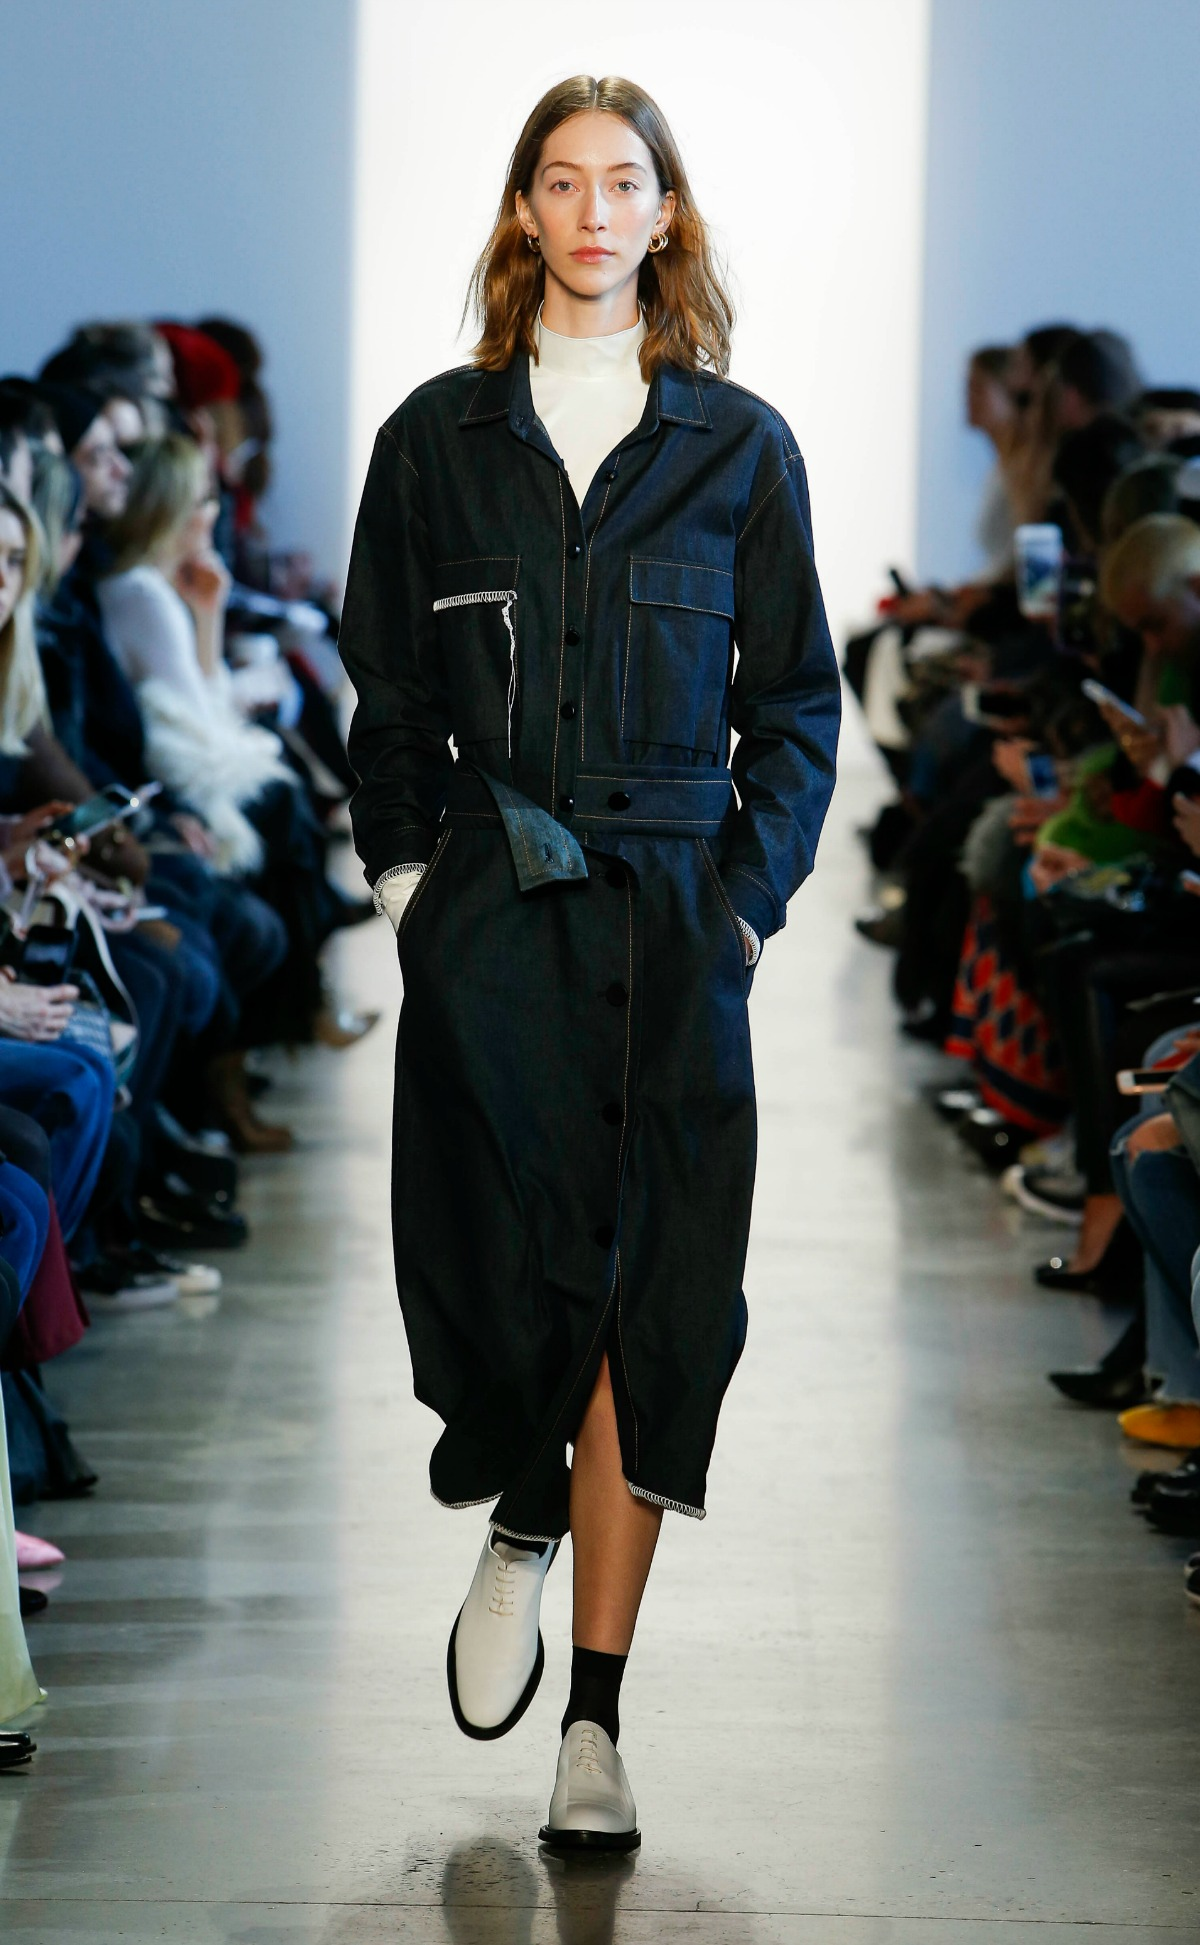 COLOVOS Fall 2018 Runway at NYFW I Chambray Shirtdress with Faux Leather Turtleneck #NYFW #WinterFashion